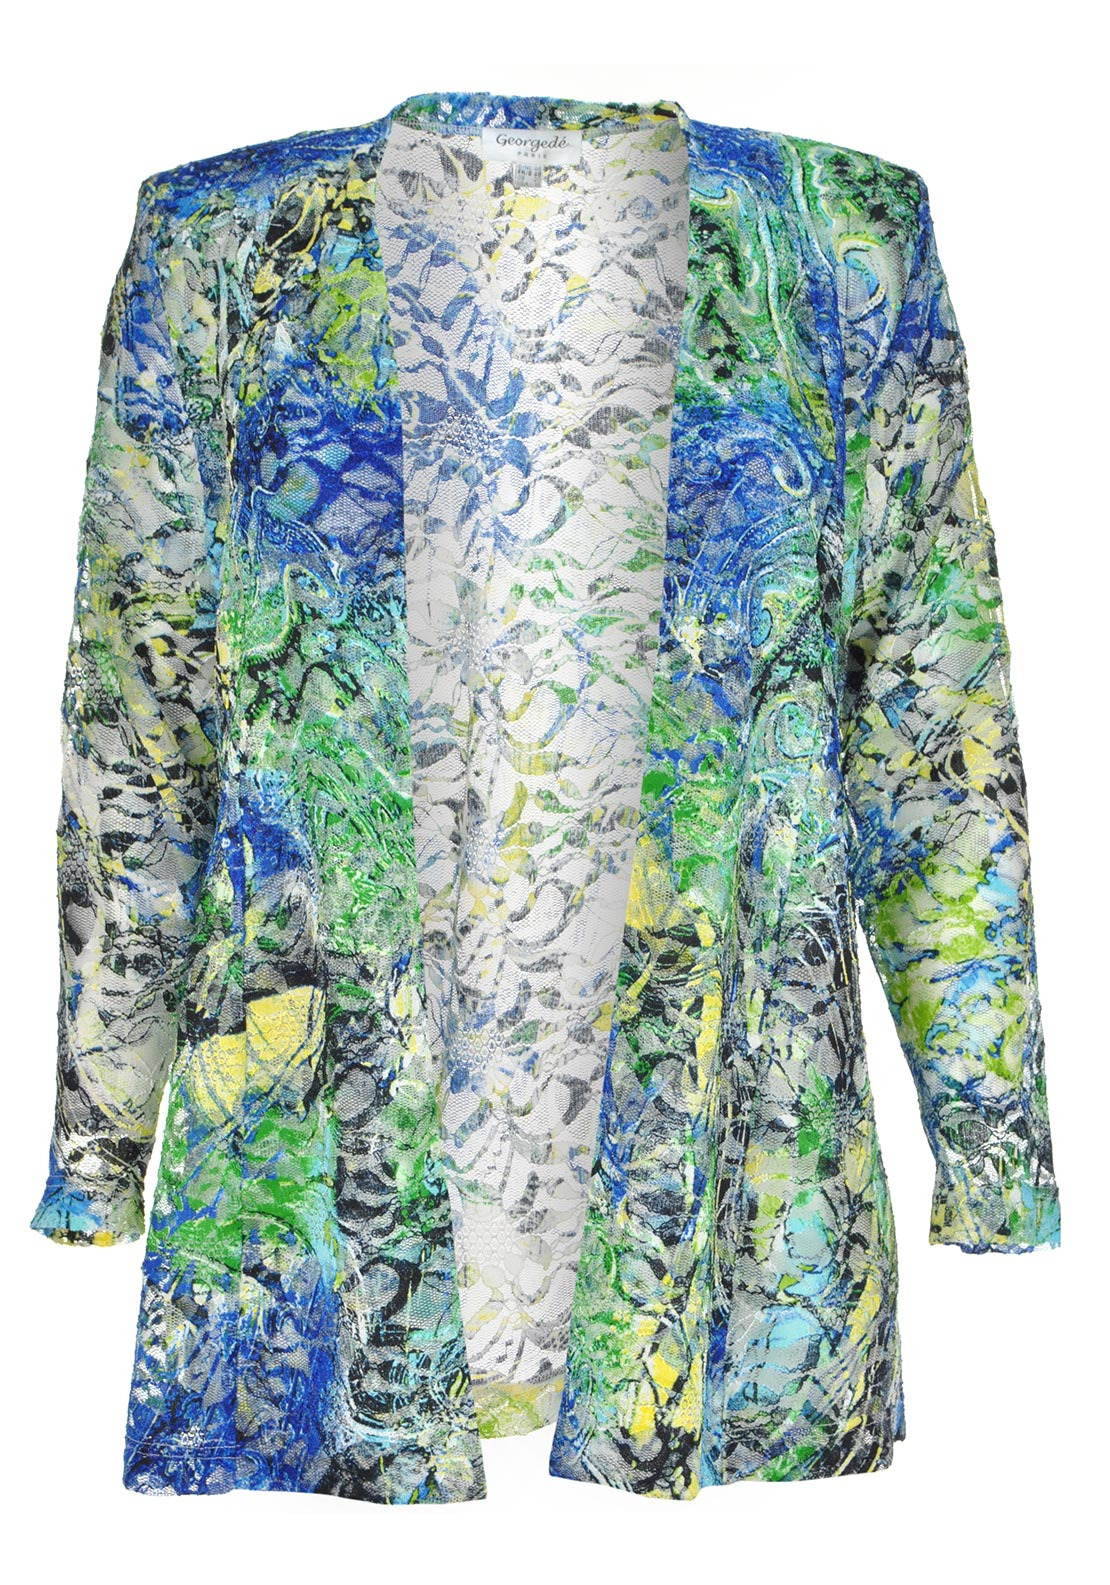 Georgede Printed Lace Jacket, Multi-Coloured